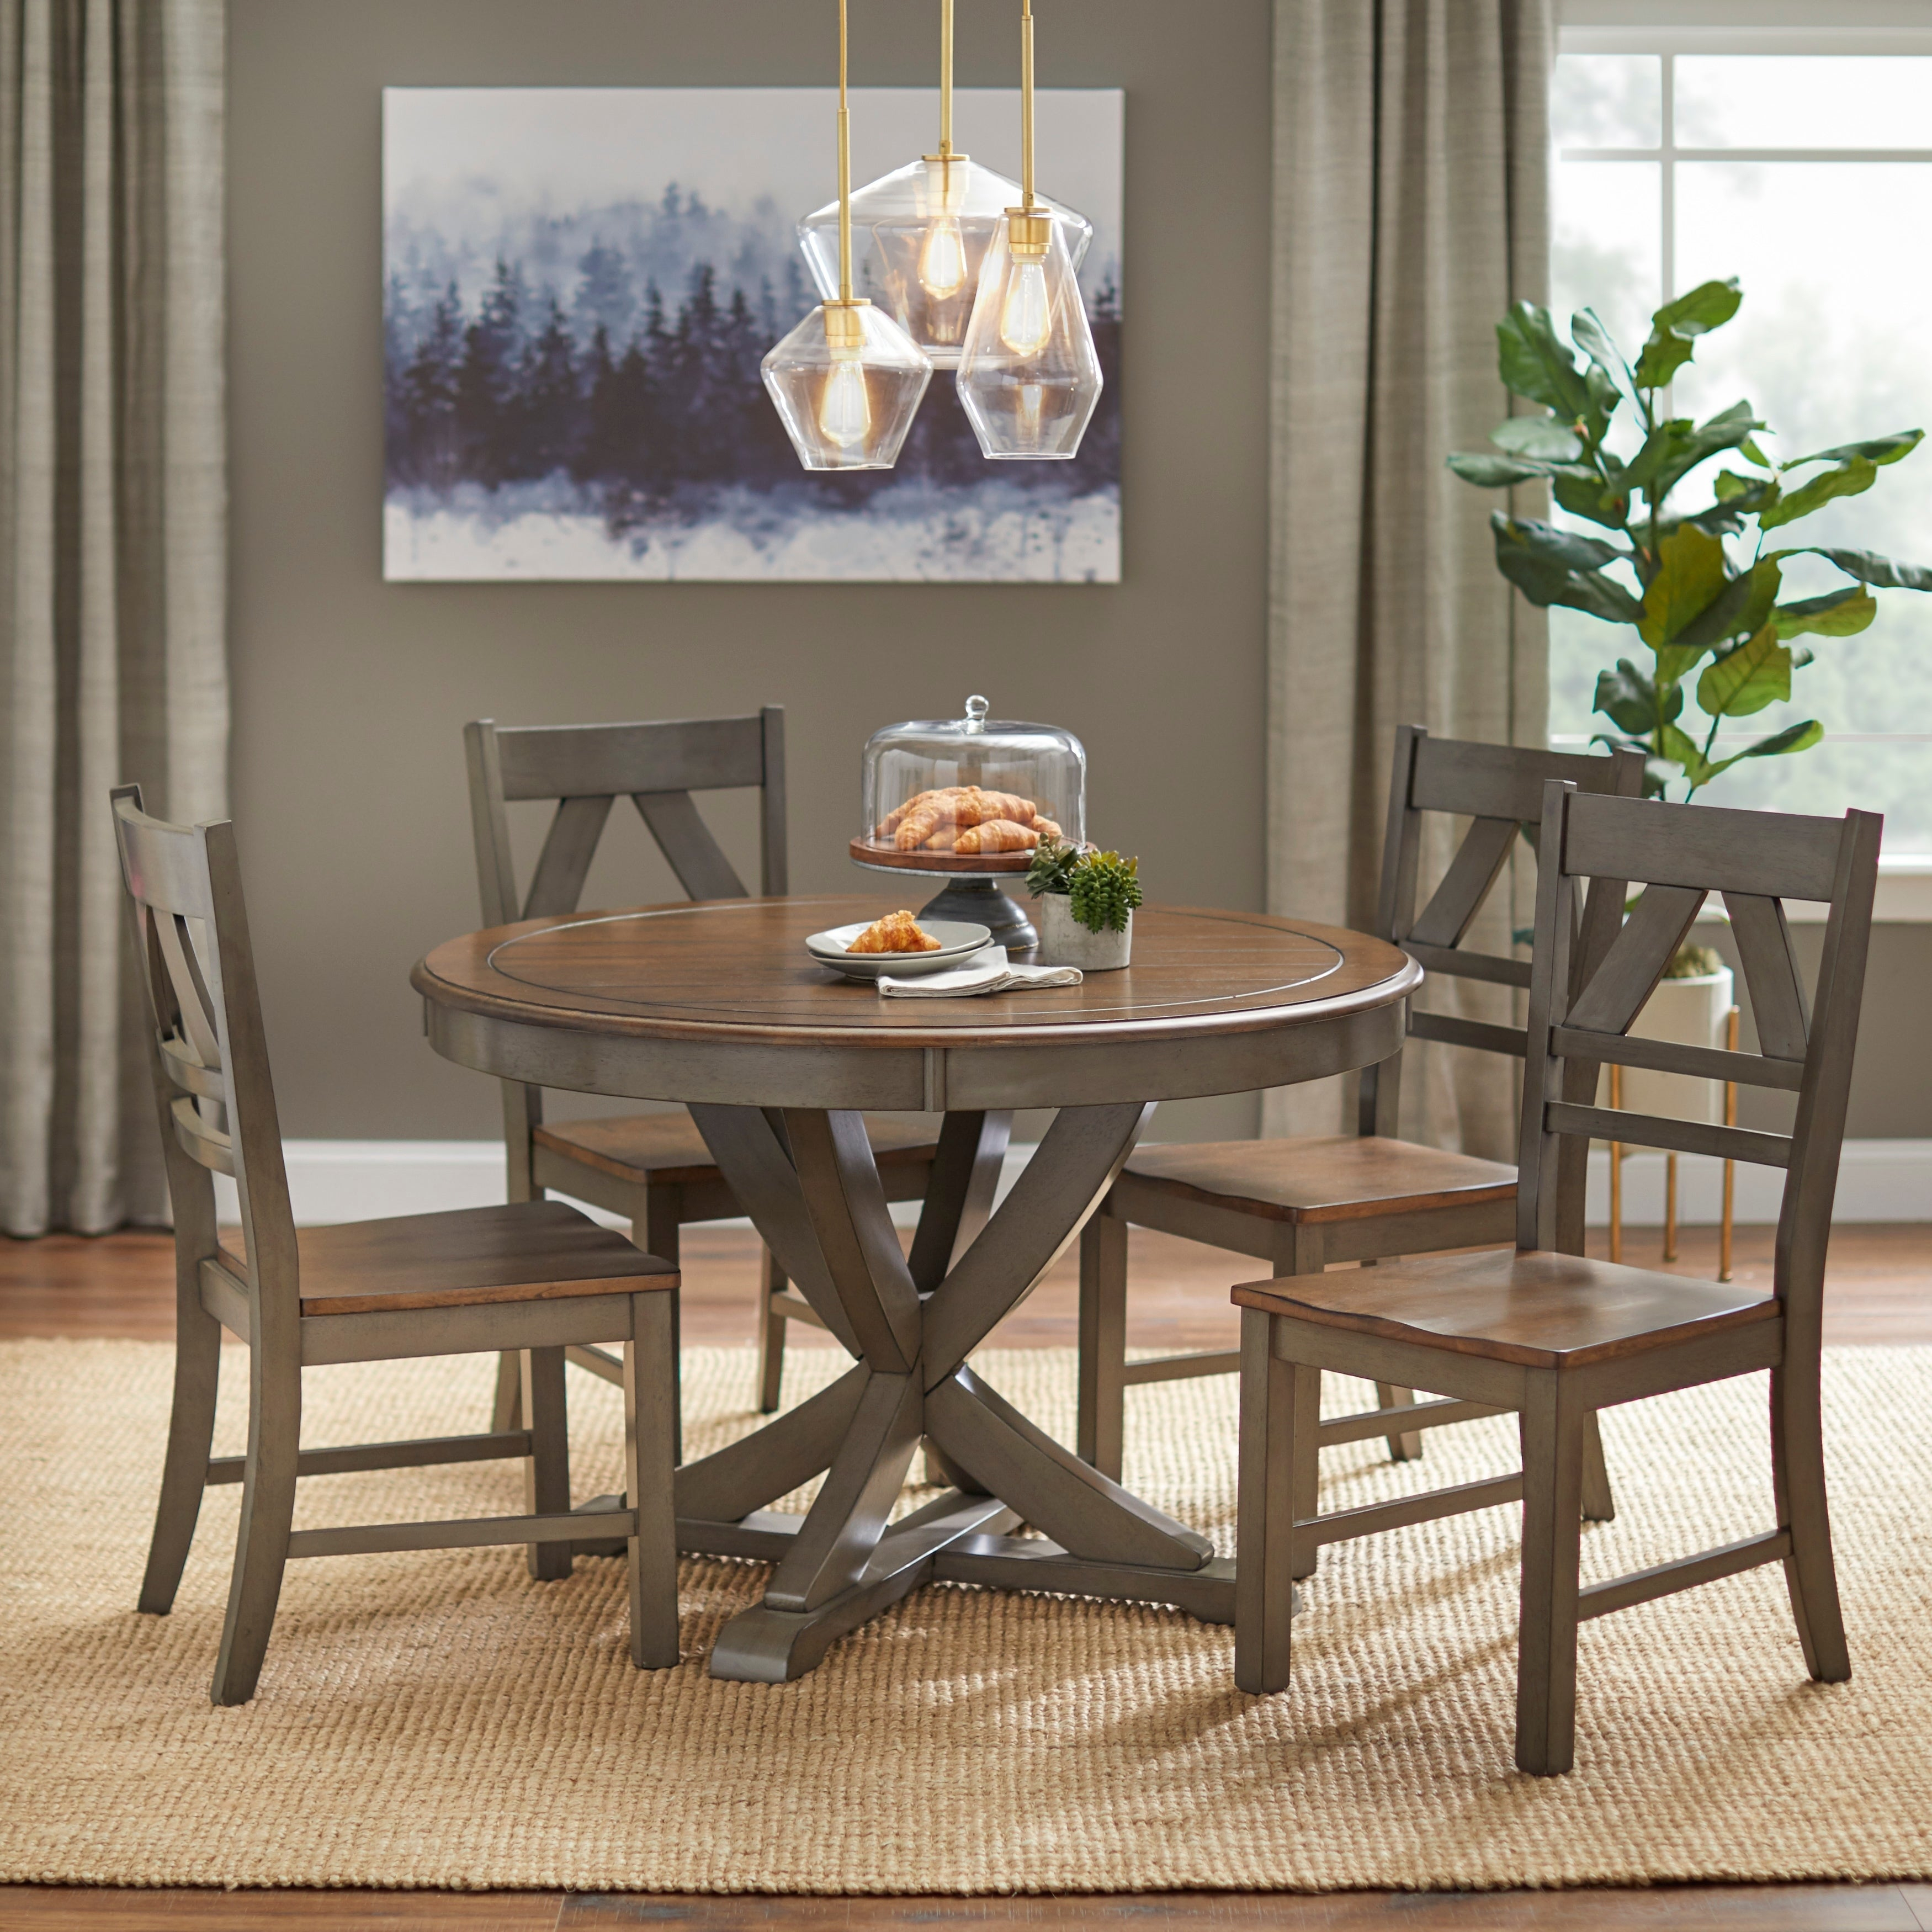 Rossiter 3 Piece Dining Sets Regarding Newest Buy 3 Piece Sets Kitchen & Dining Room Sets Online At Overstock (#14 of 20)